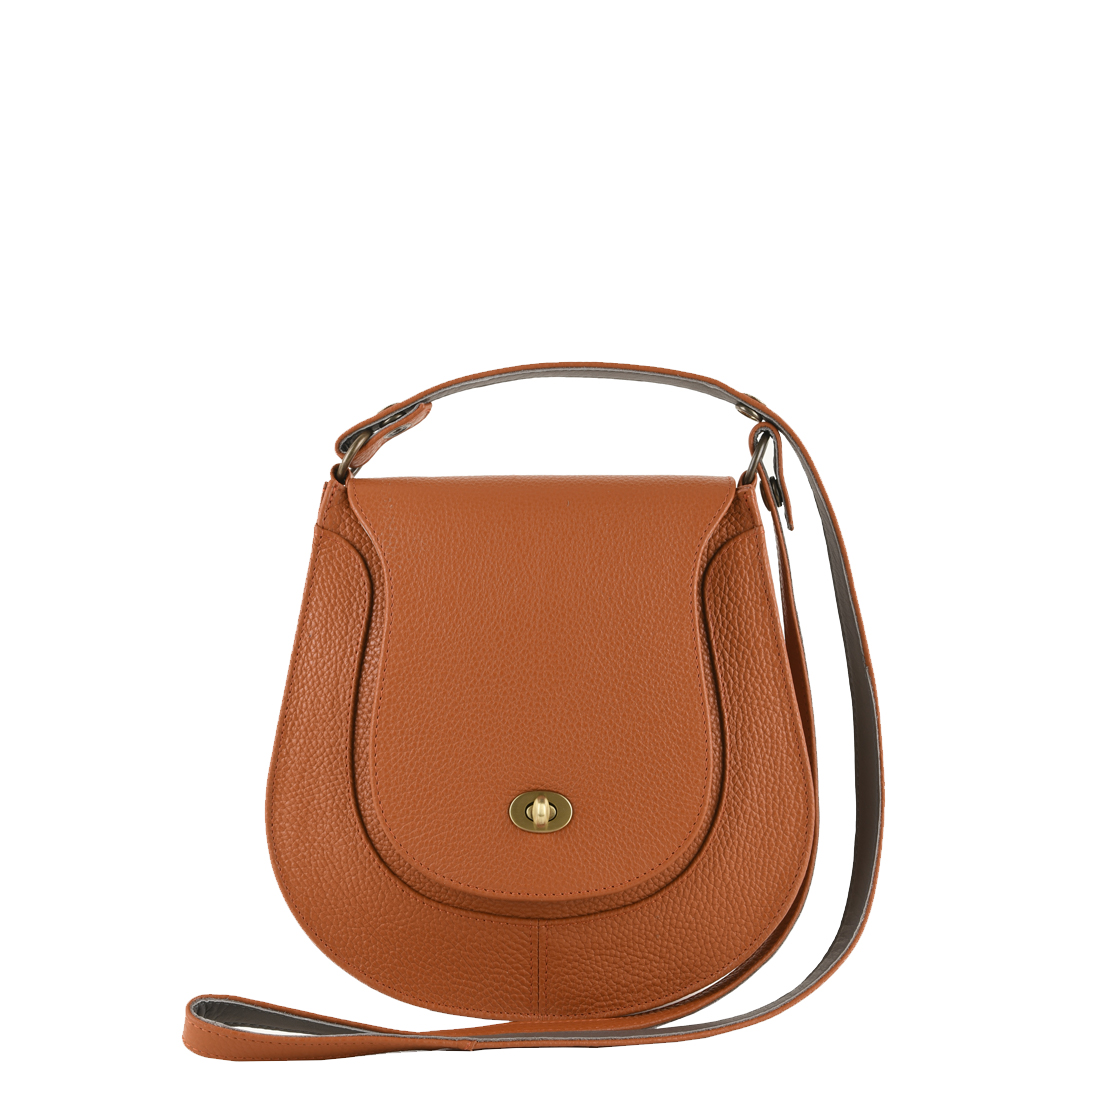 Hattie Burnt Orange Leather Shoulder Bag